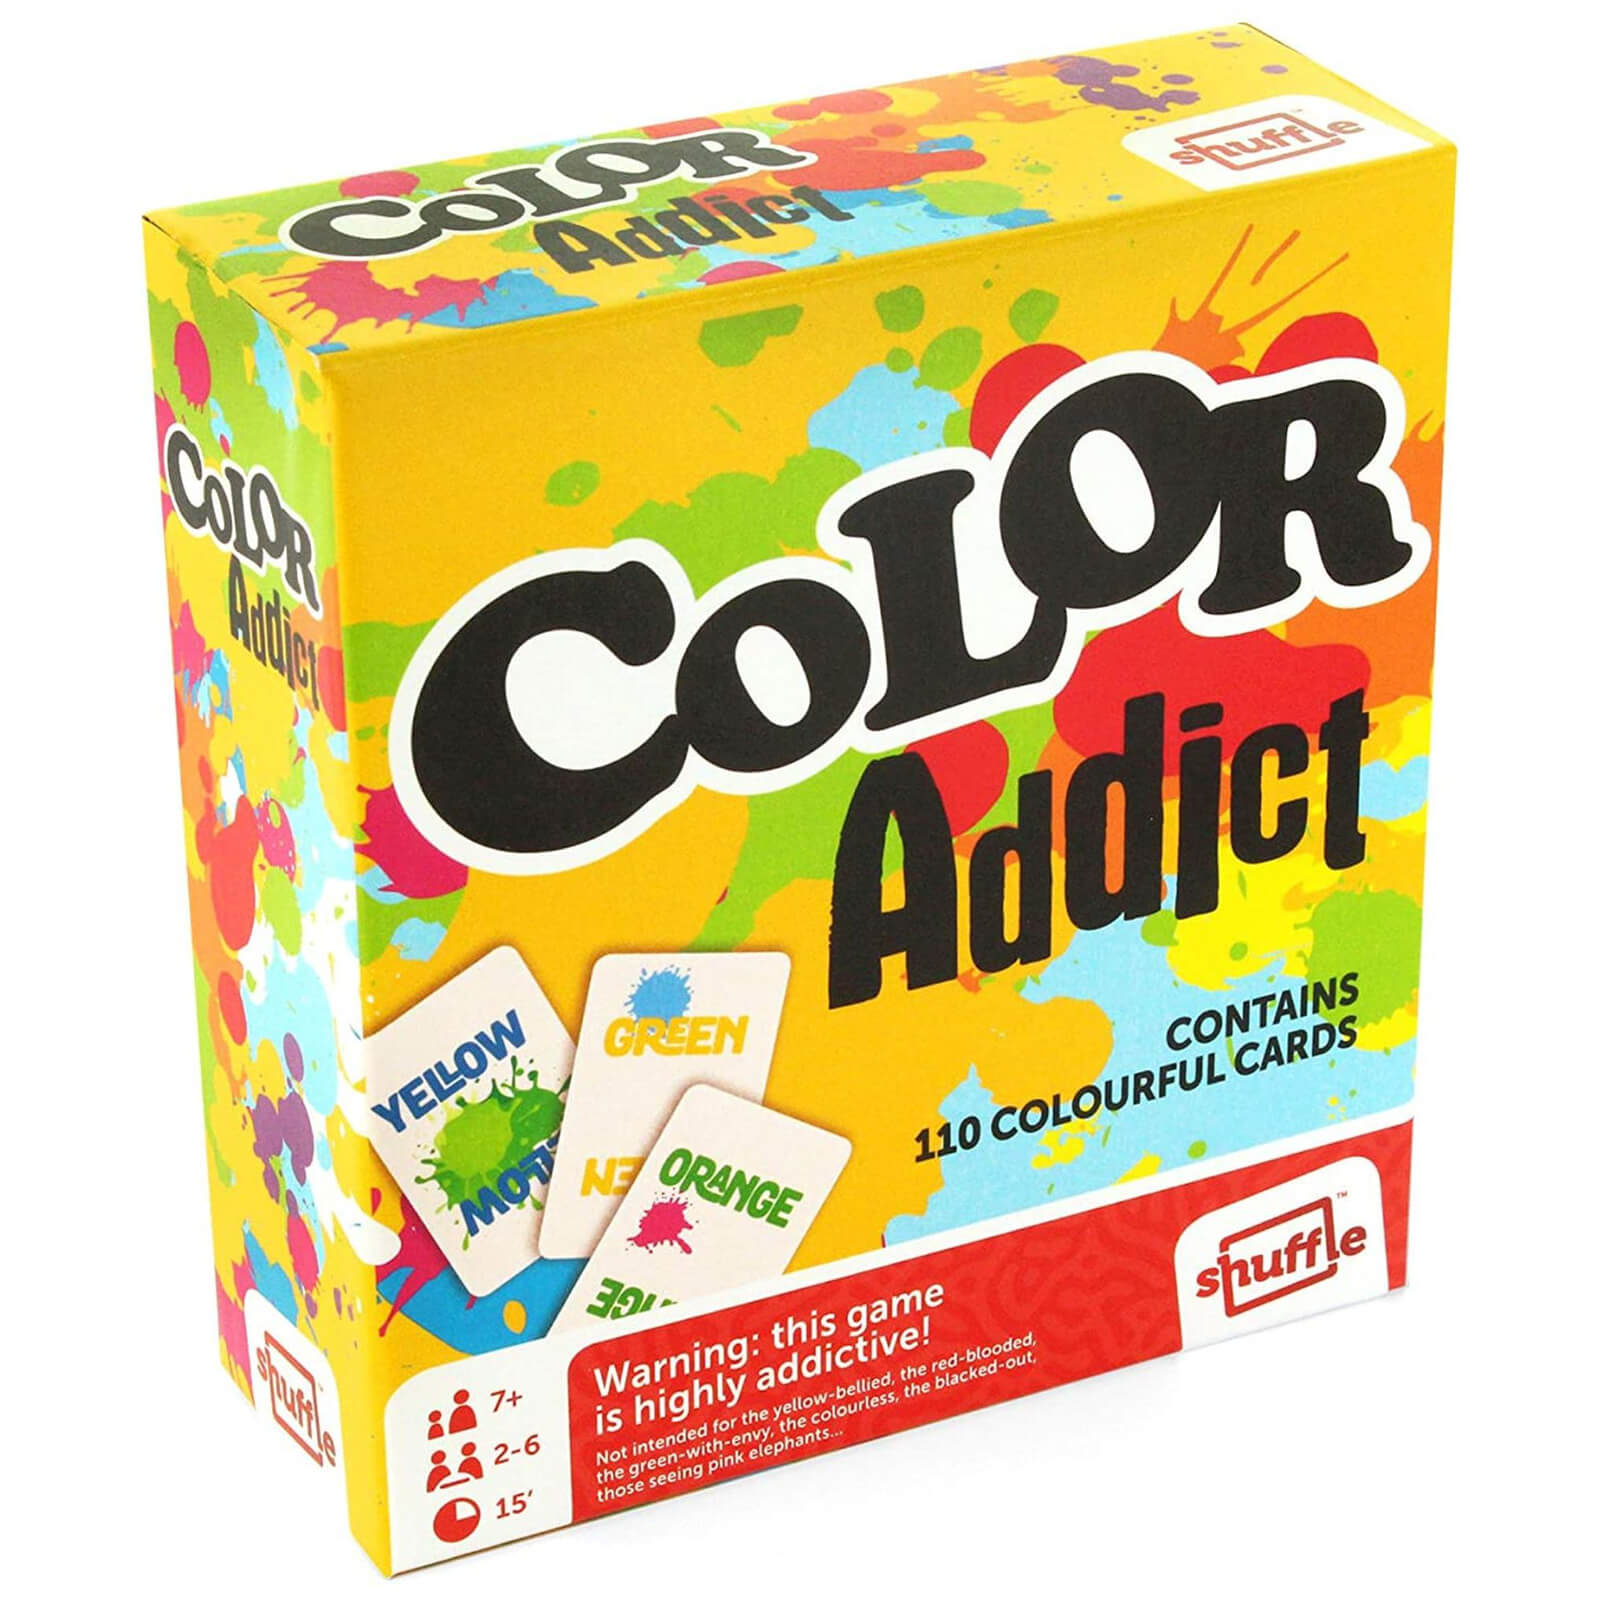 Image of Colour Addict Card Game